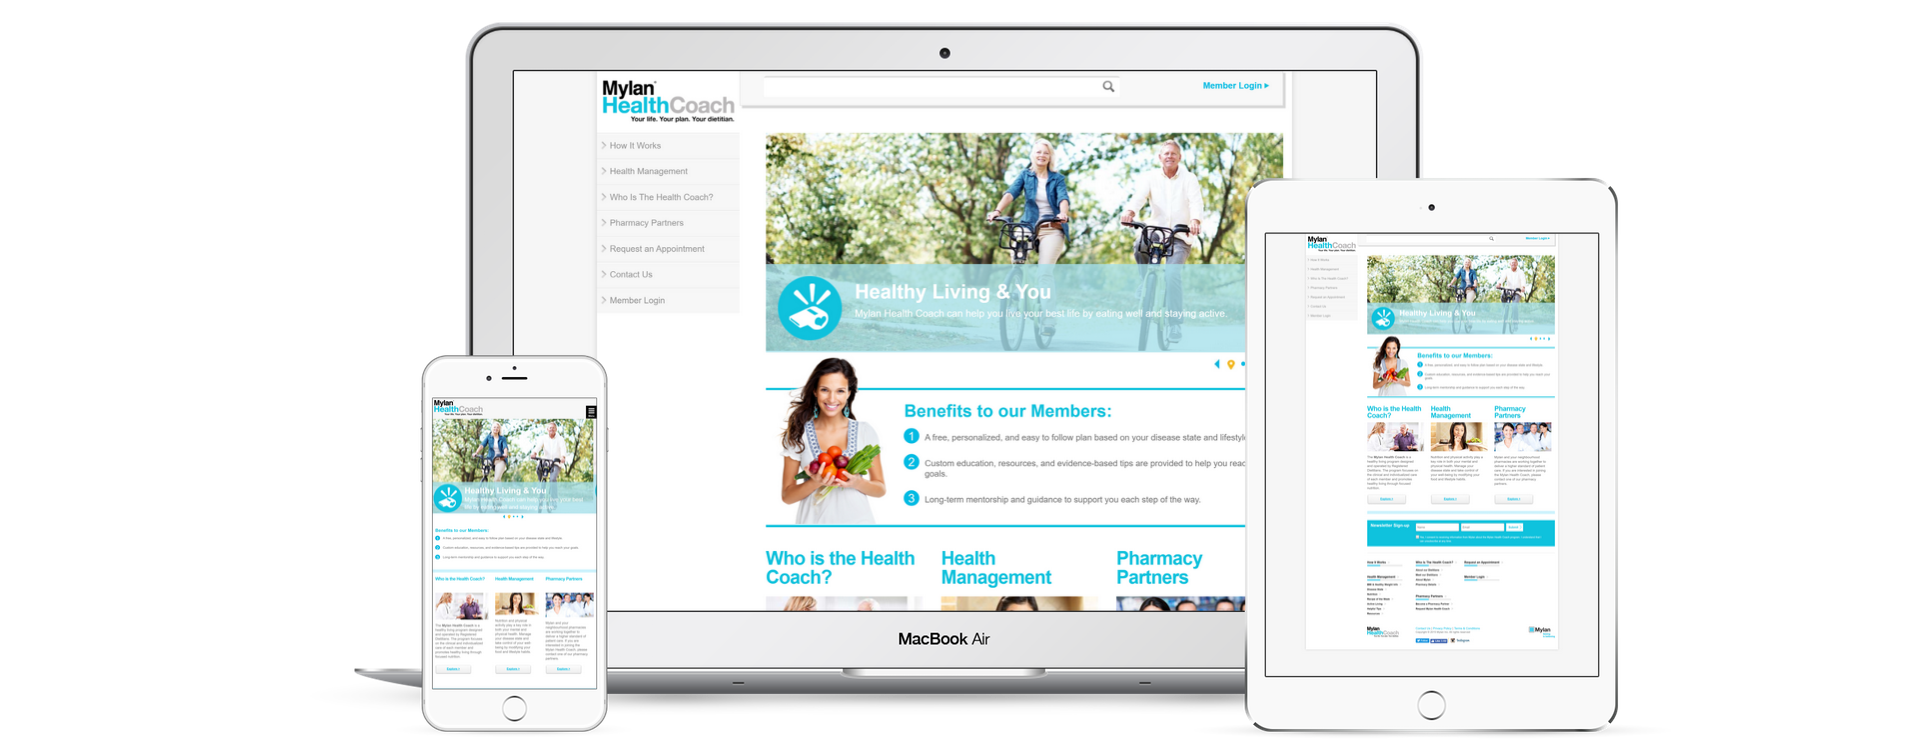 Enginess Launches Mylan Health Coach Portal | Enginess News